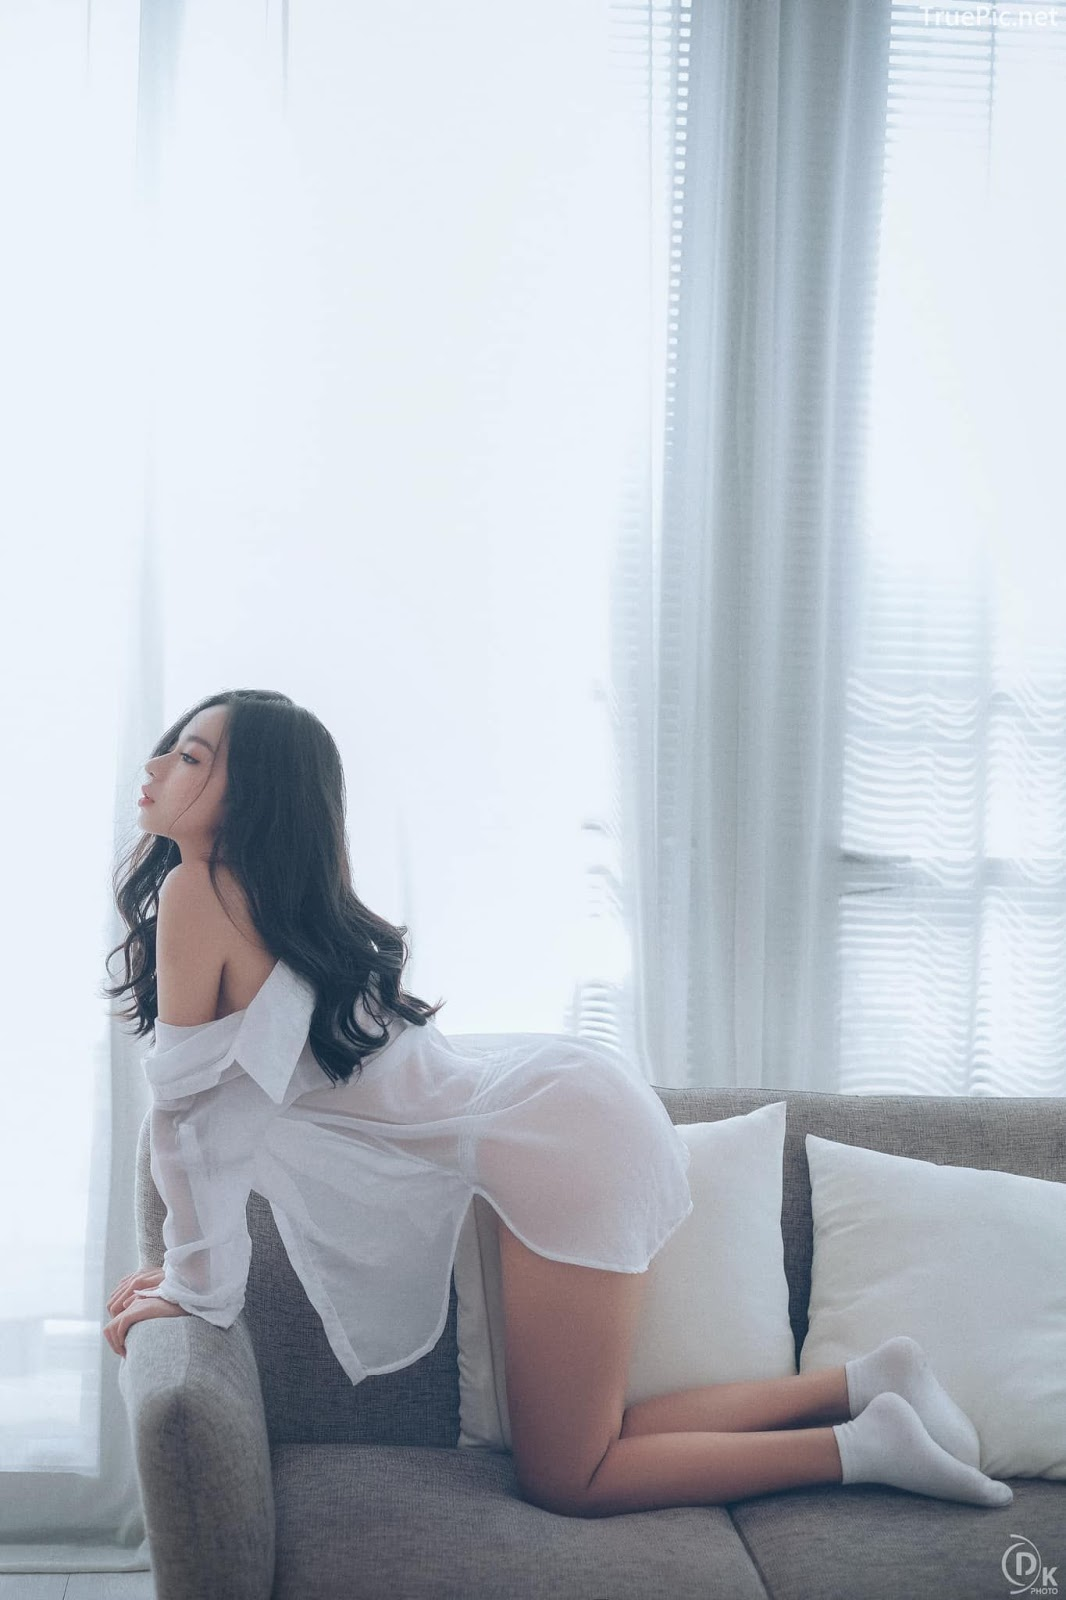 Vietnamese Sexy Model - Vu Ngoc Kim Chi - Beautiful in white - TruePic.net- Picture 5